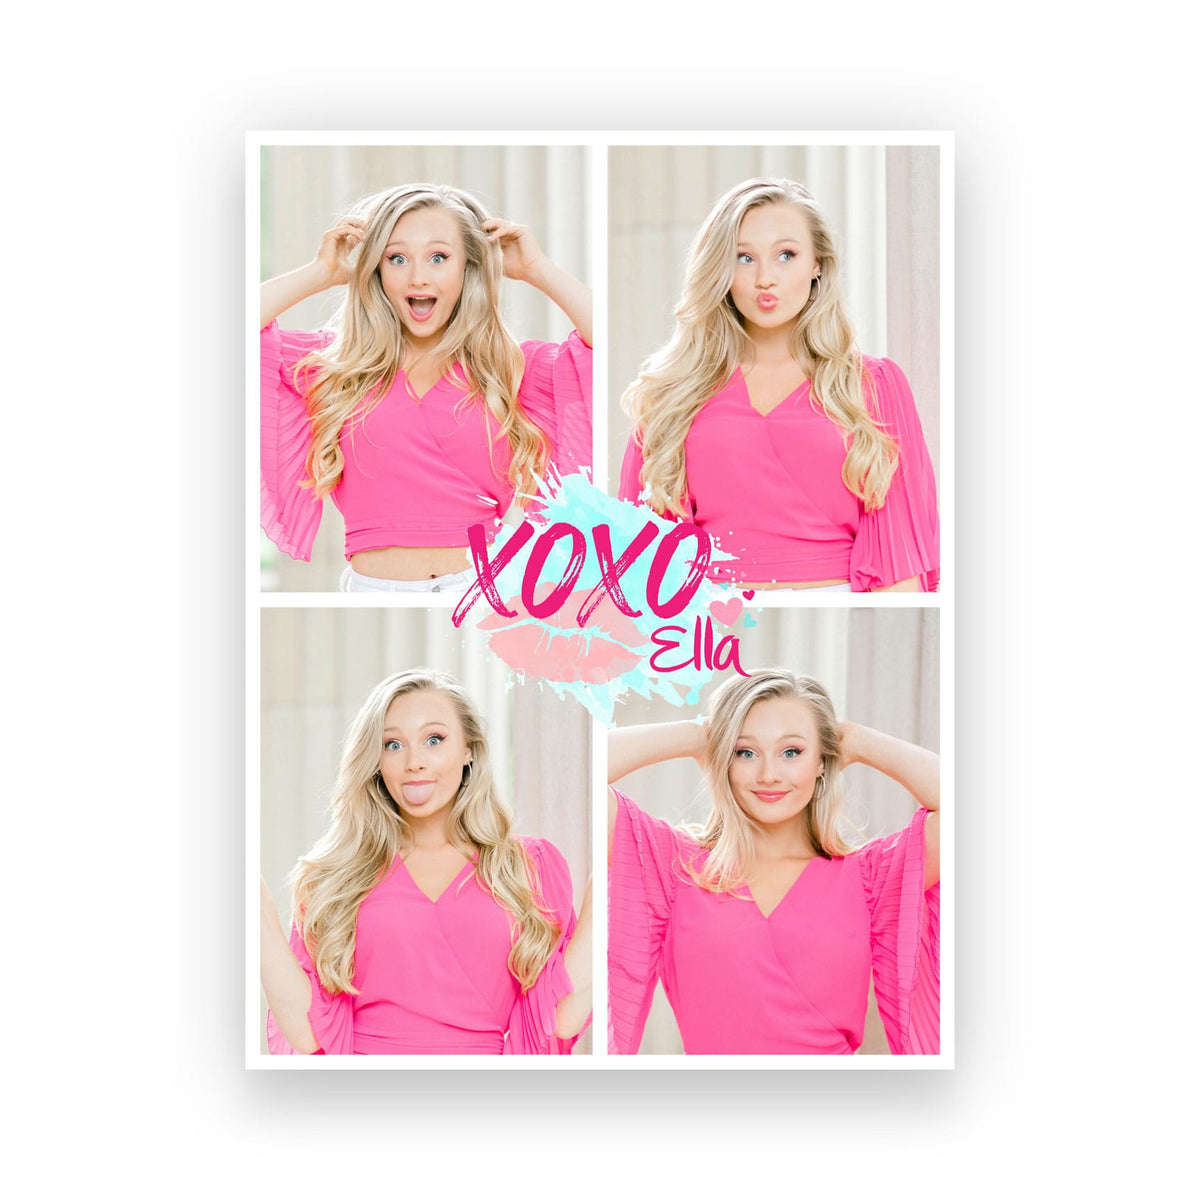 XOXO Ella Collage Poster